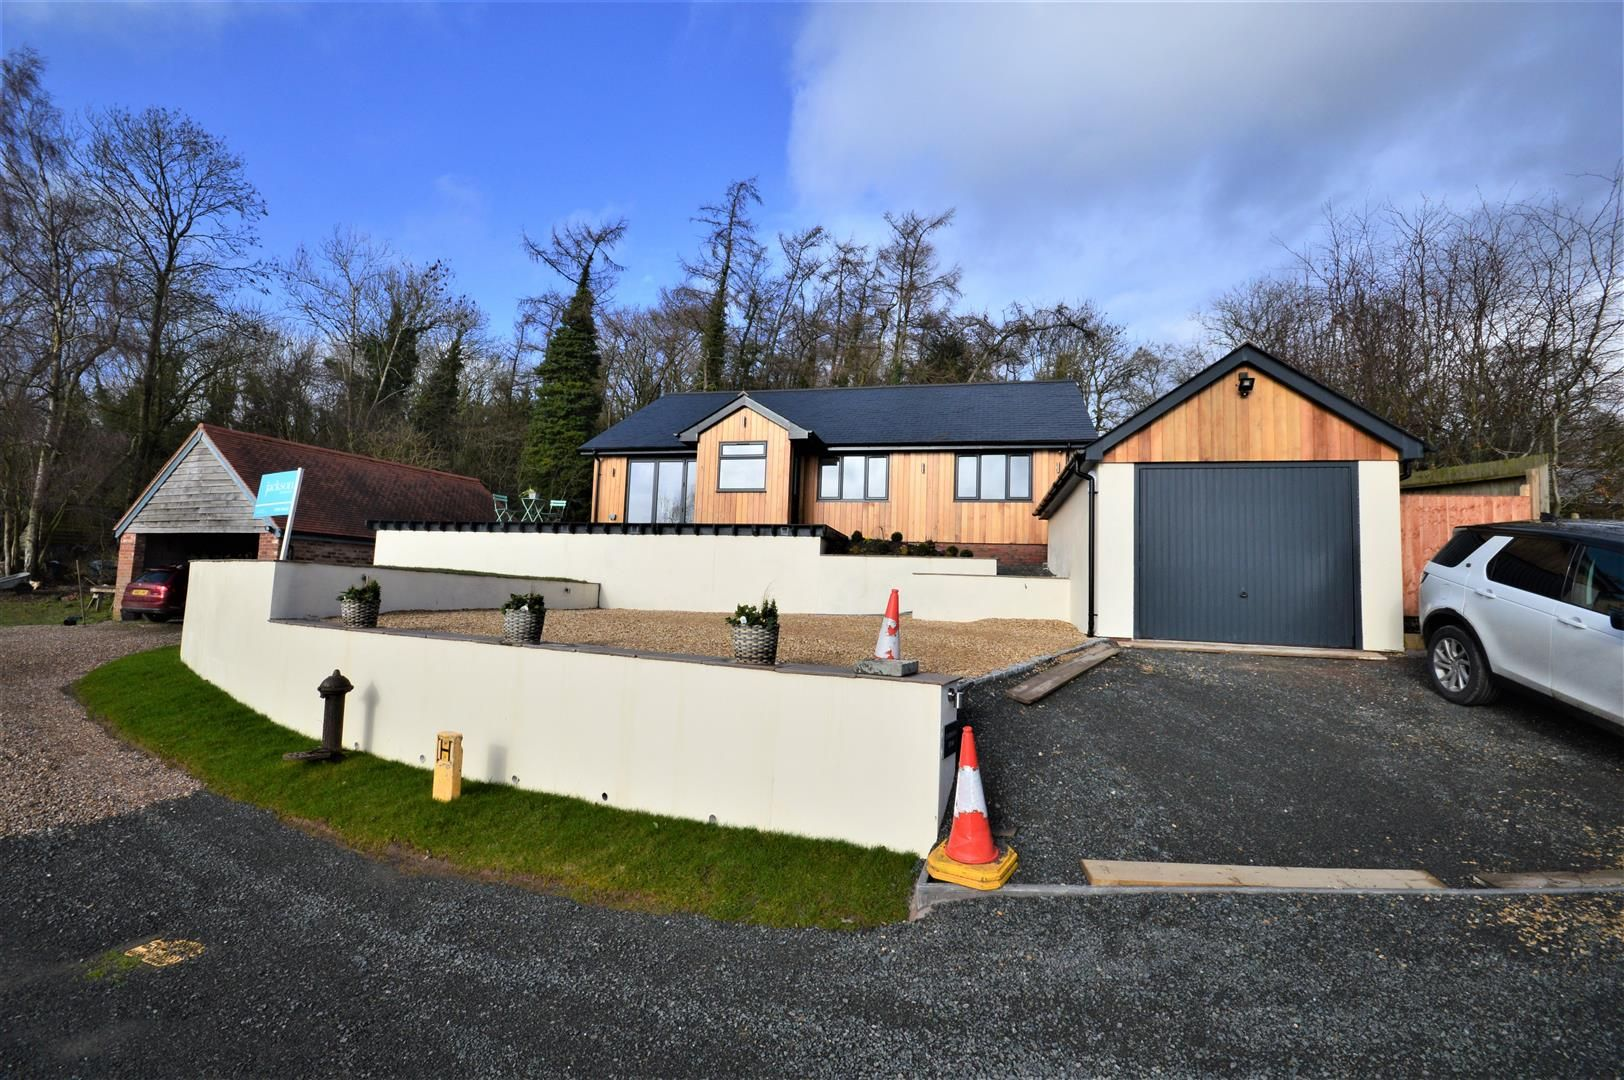 3 bed detached bungalow for sale in Shucknall Hill, HR1